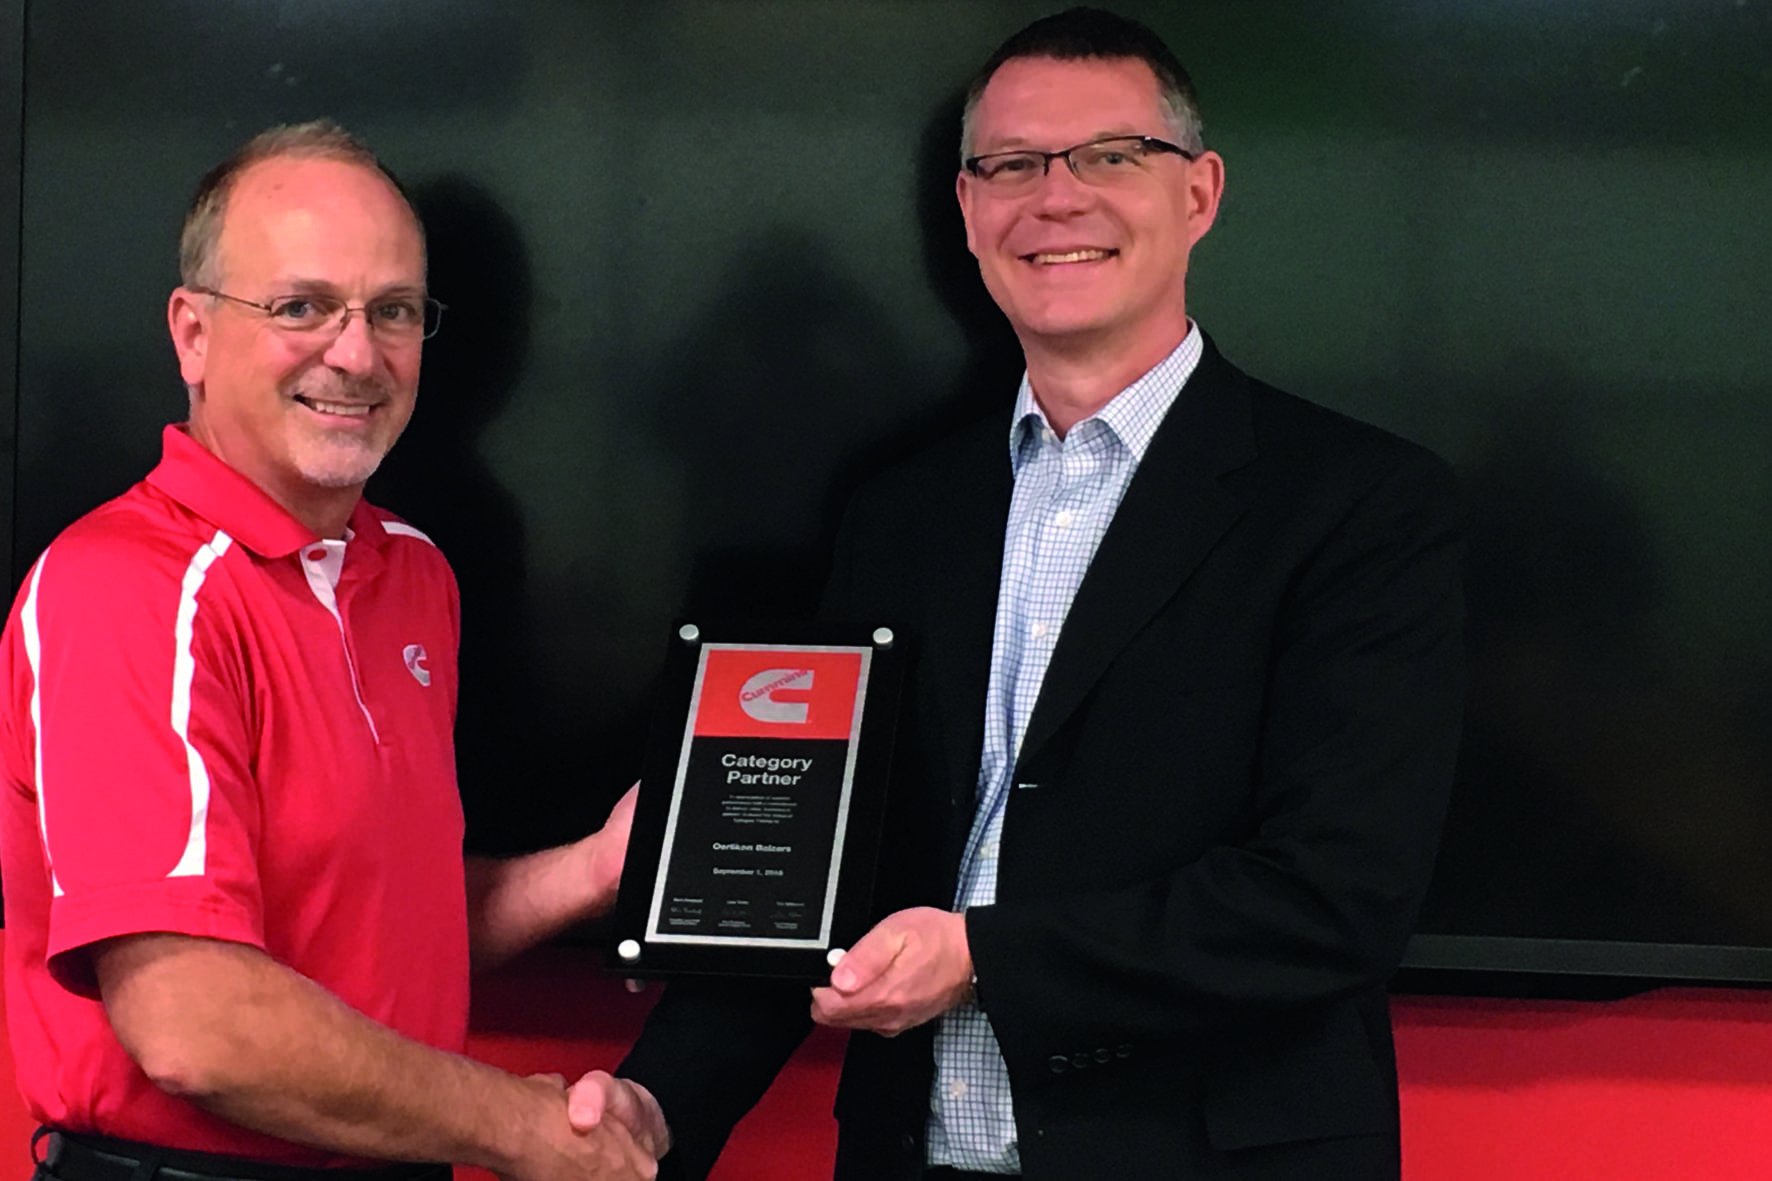 Supplier Award from Cummins Inc., USA